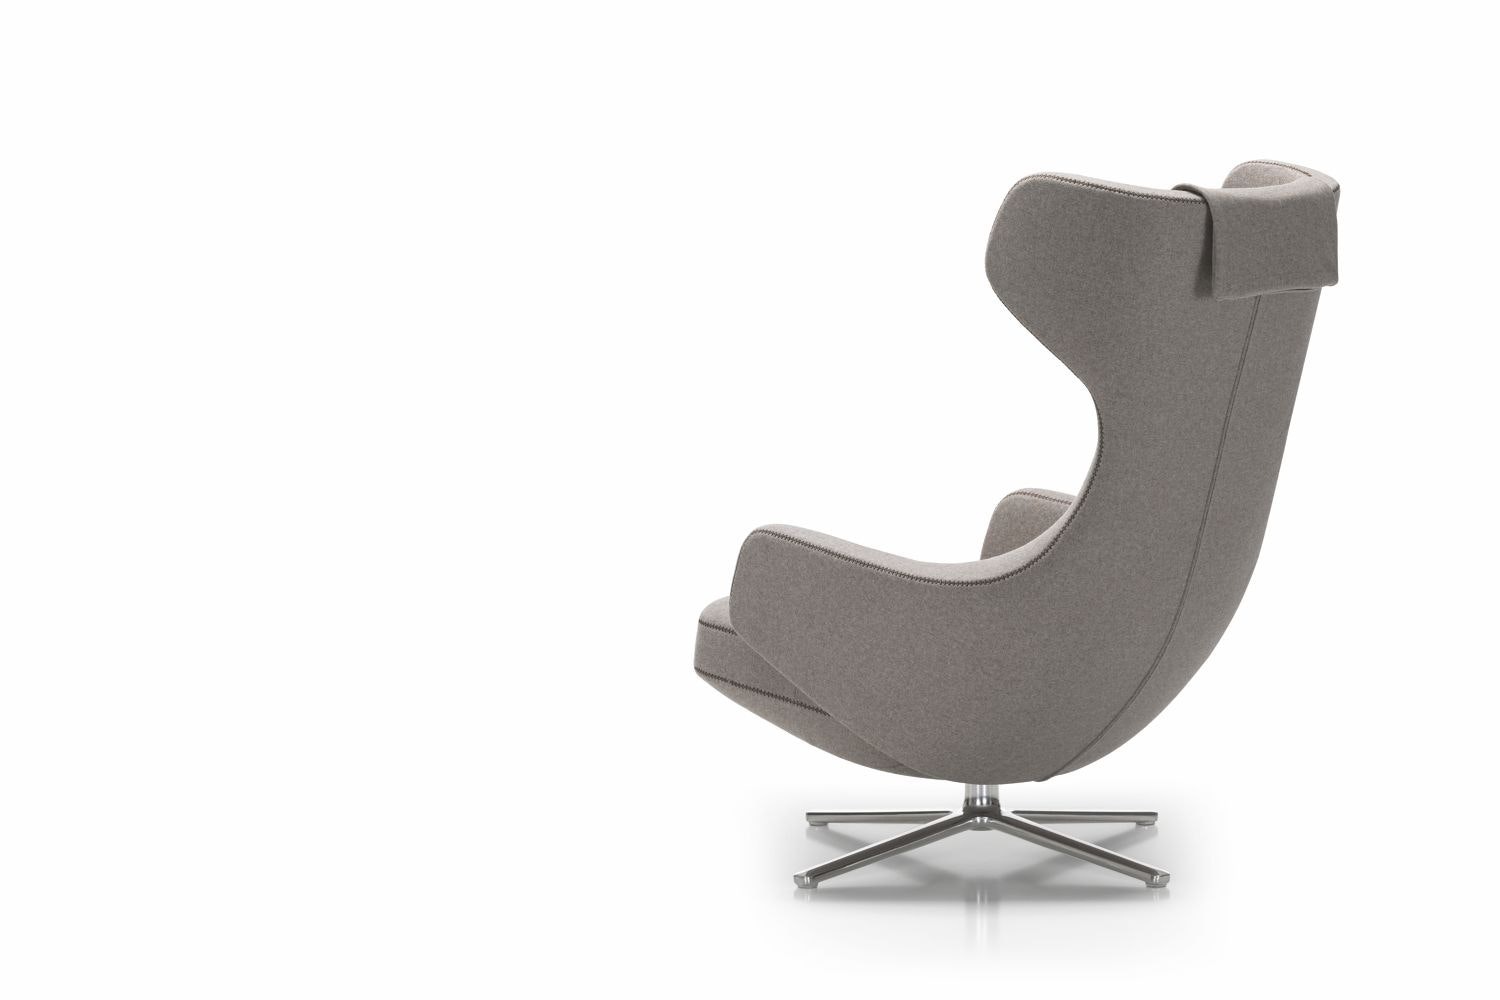 Grand Repos Leather Armchair by Antonio Citterio for Vitra